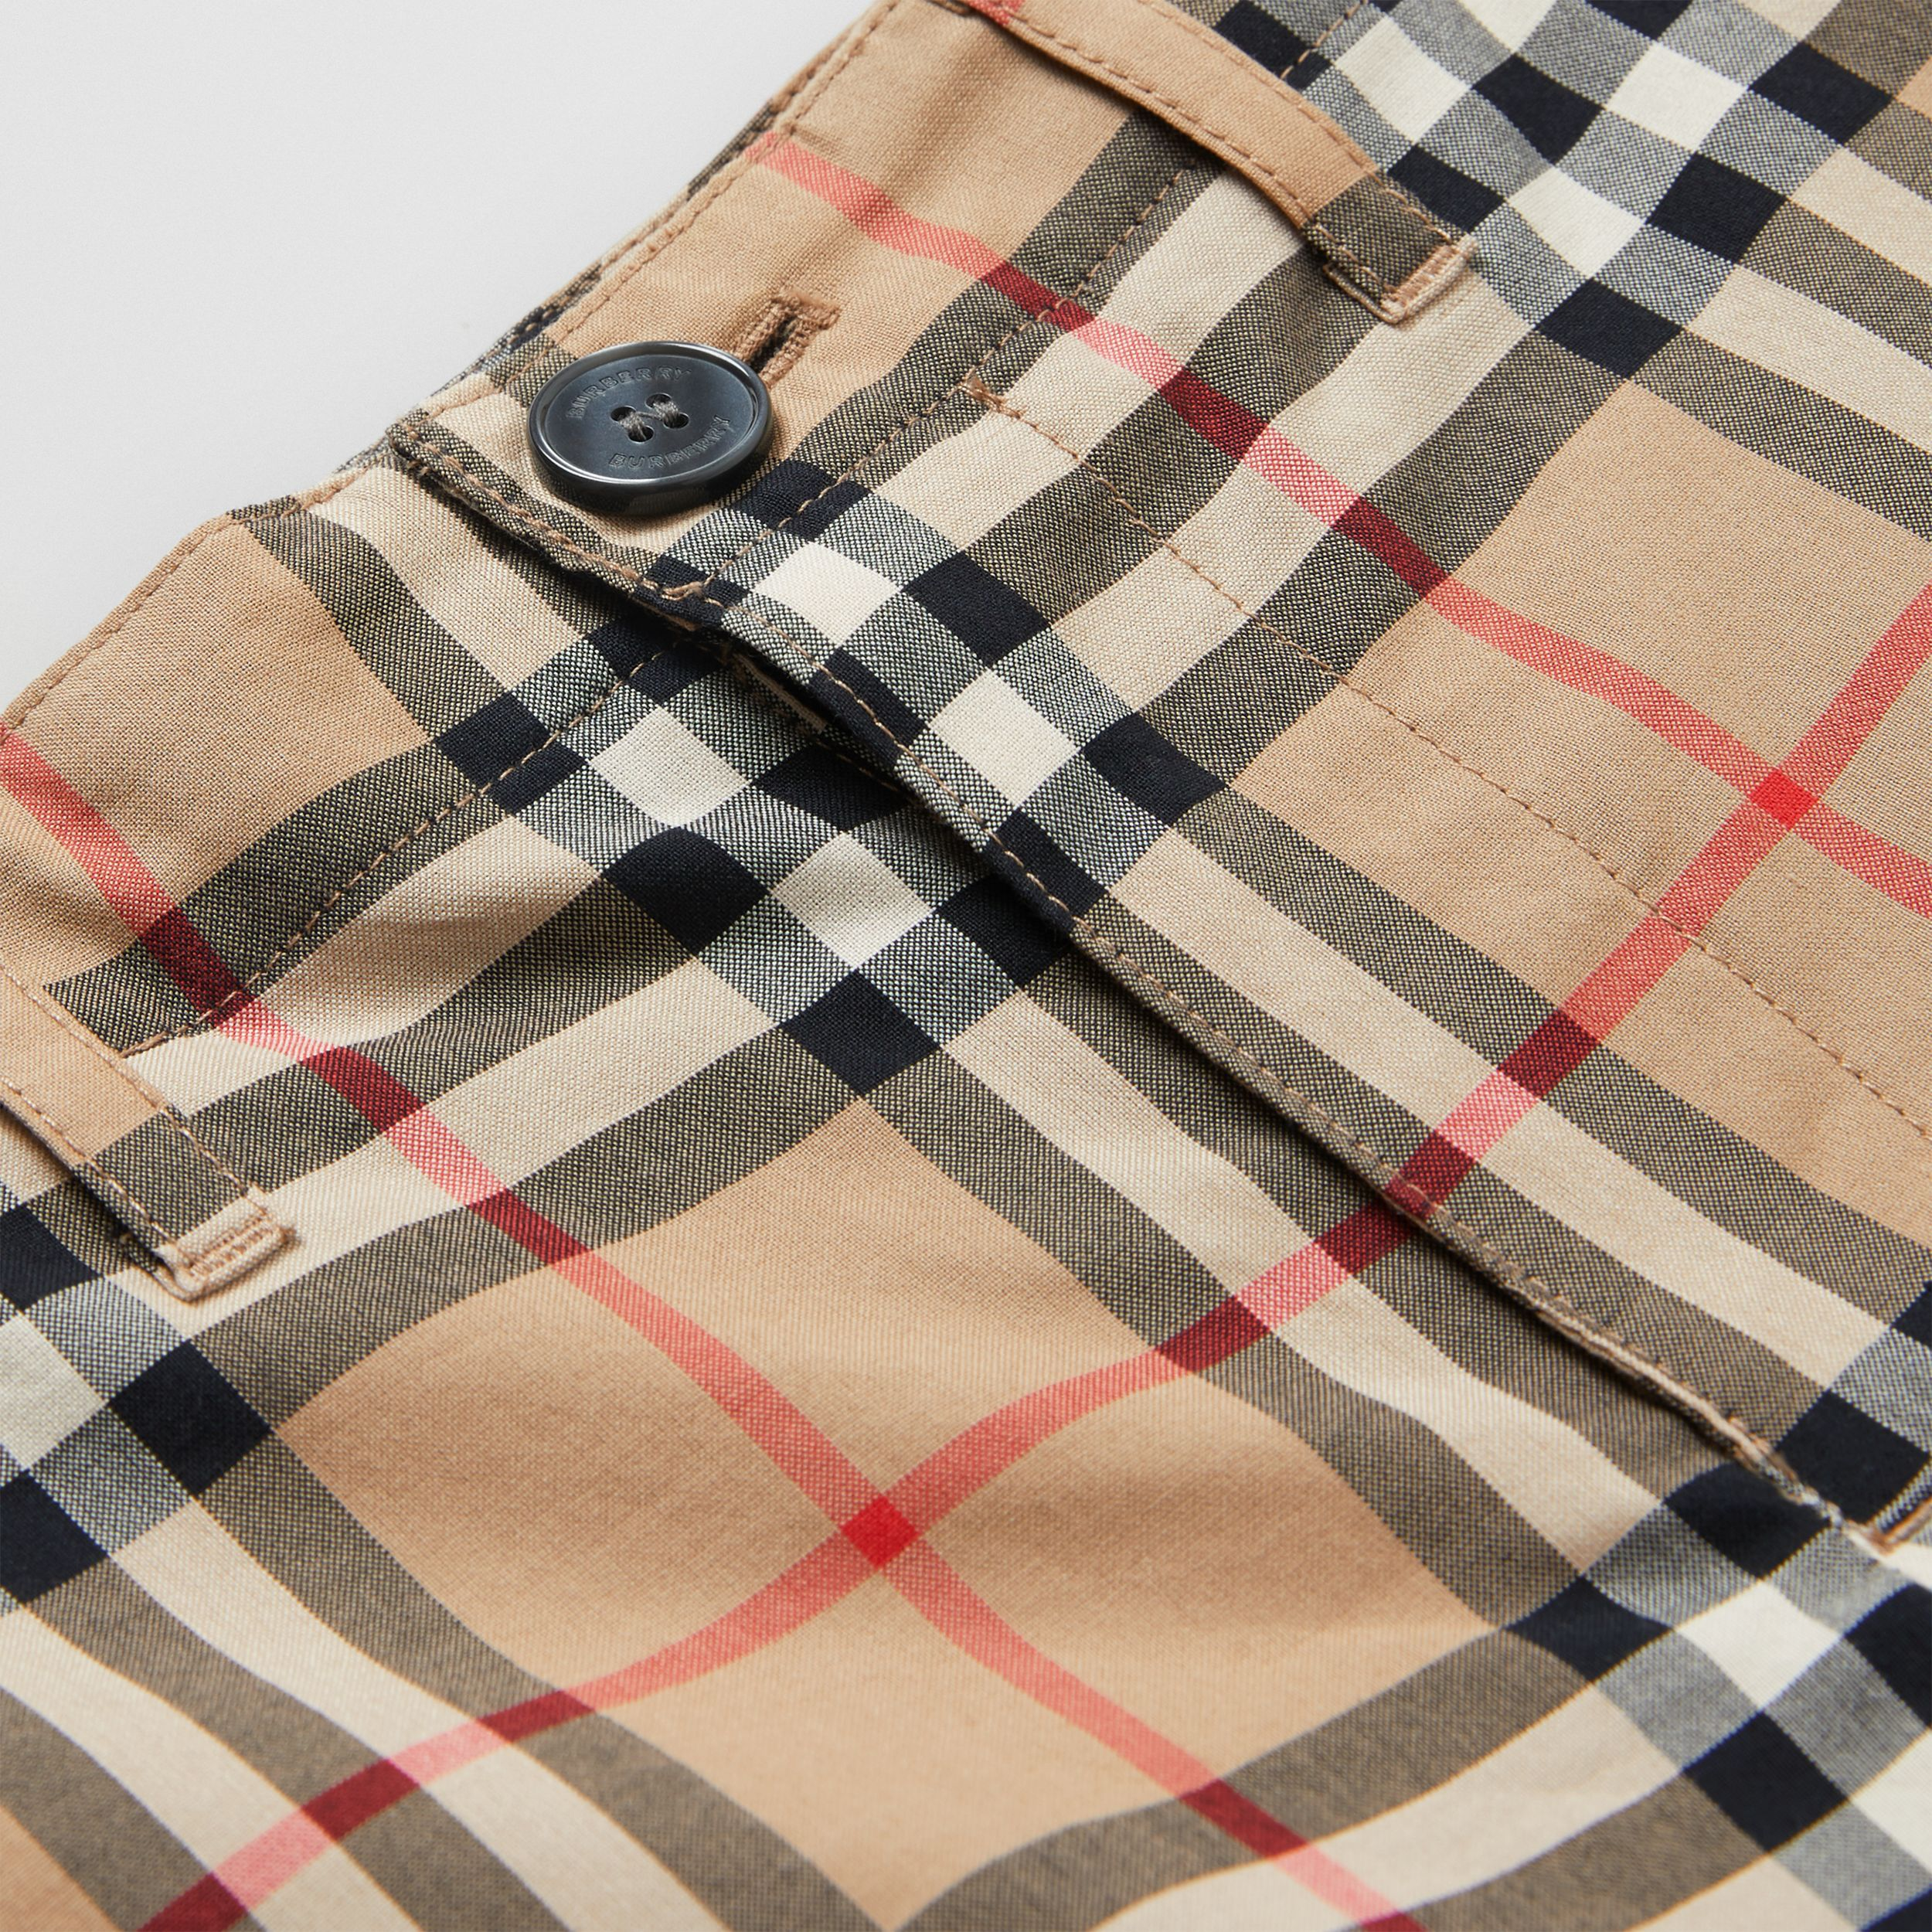 Vintage Check Cotton Tailored Shorts in Archive Beige | Burberry Canada - 2